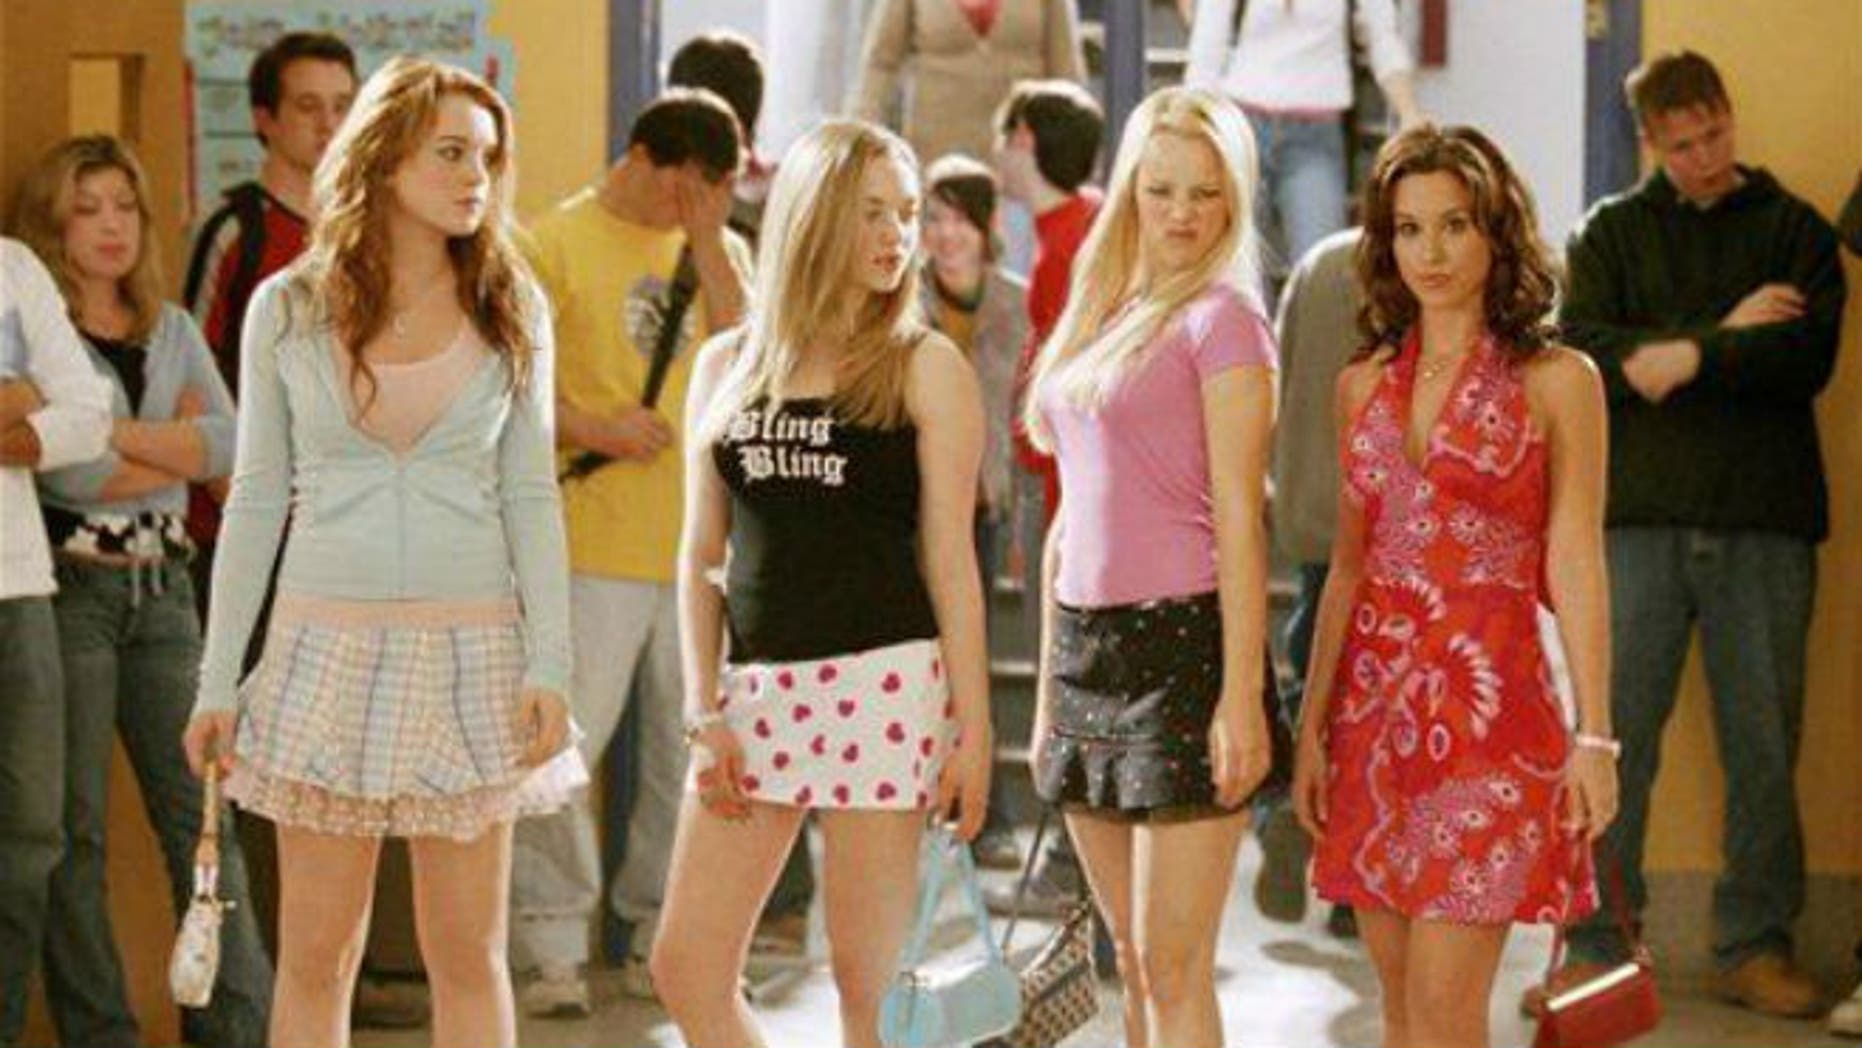 """From left, Lindsay Lohan, Amanda Seyfried, Rachel McAdams, and Lacey Chabert are shown in a scene from """"Mean Girls."""""""